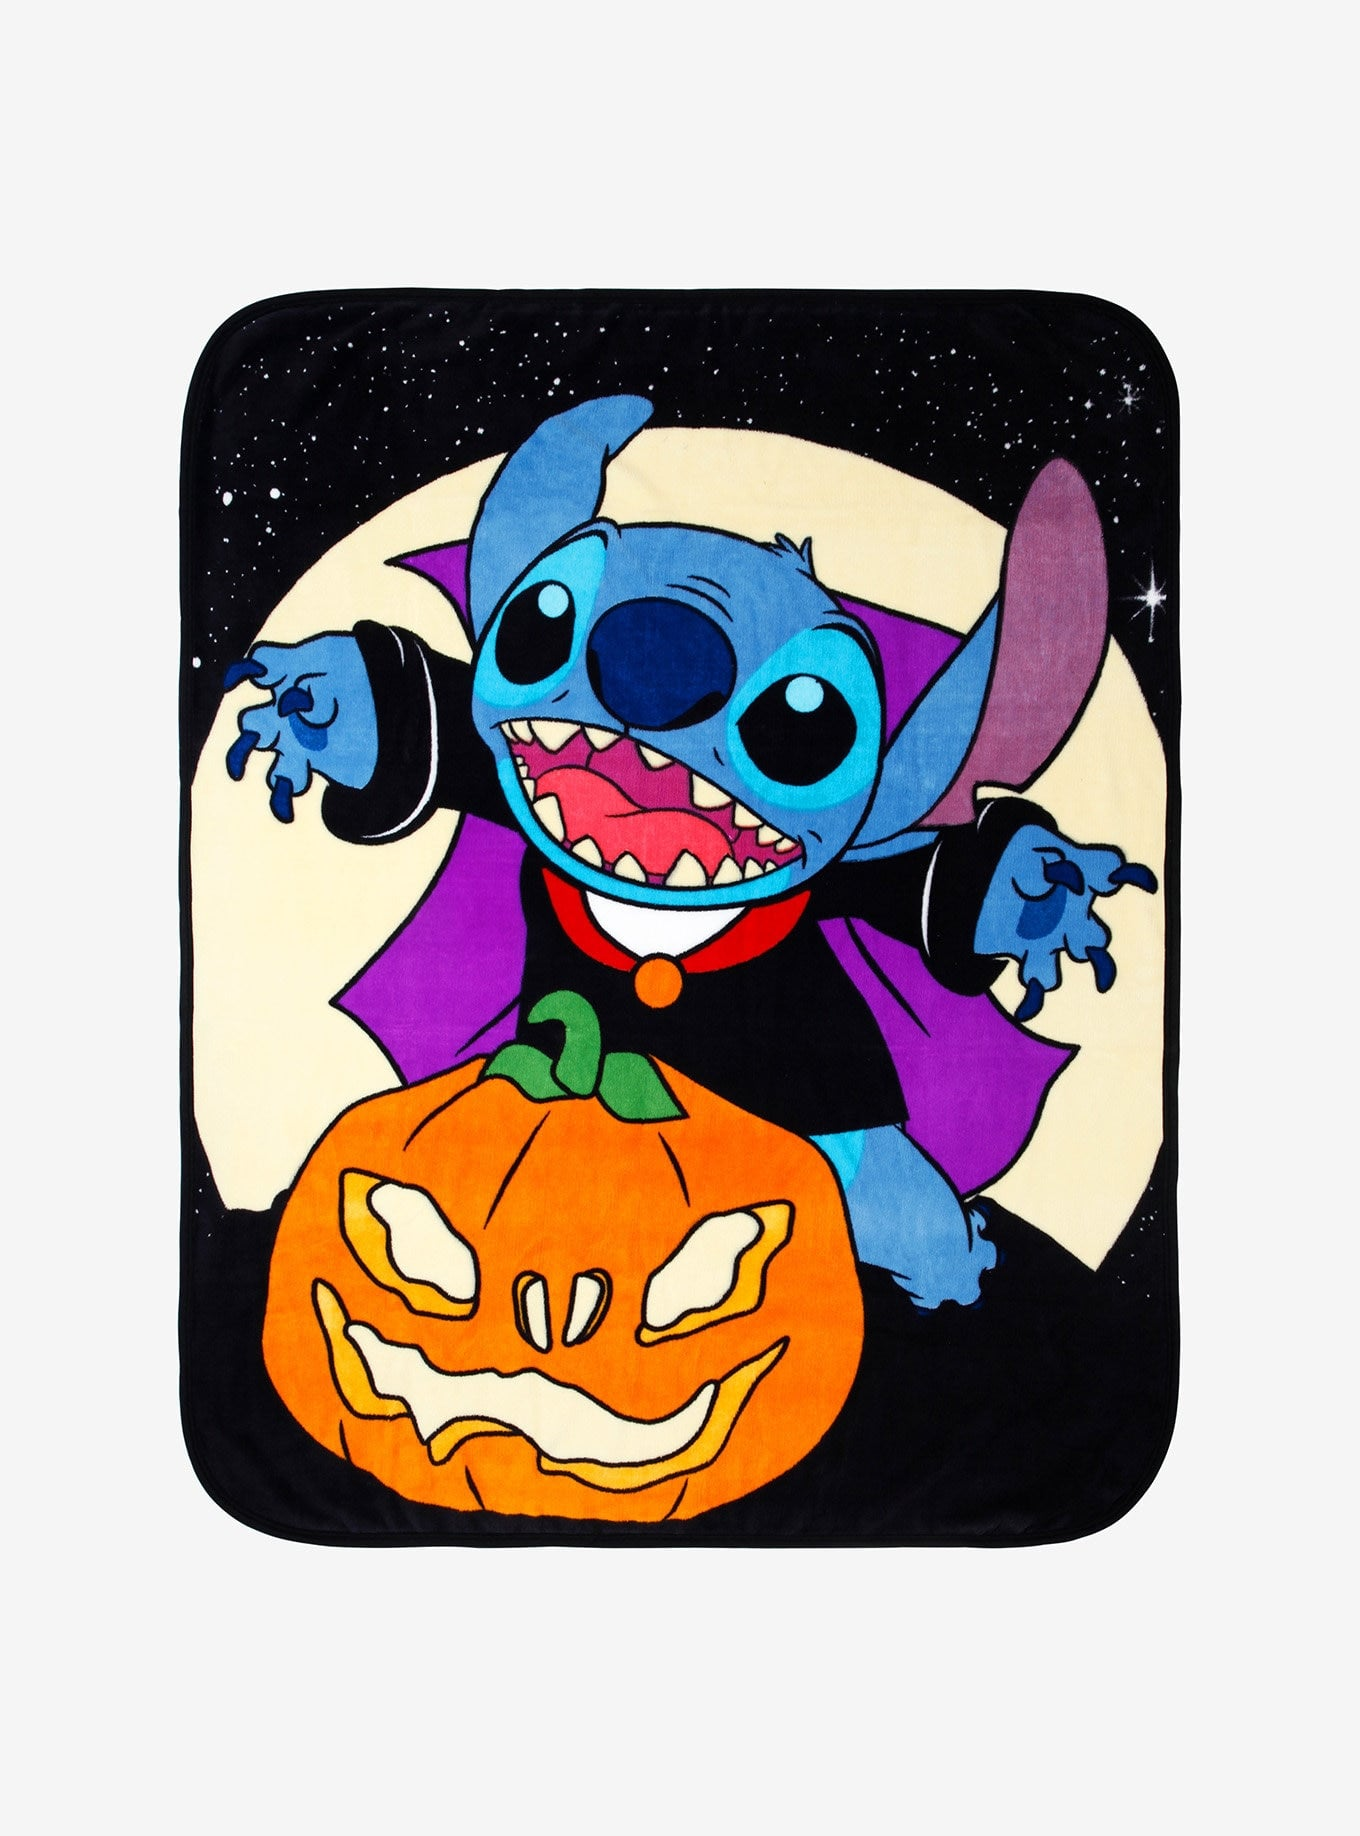 Disney Lilo Stitch Vampire Stitch Throw Blanket Wow Hot Topic S New Halloween Themed Home Decor Is Chillingly Cool Popsugar Home Photo 18